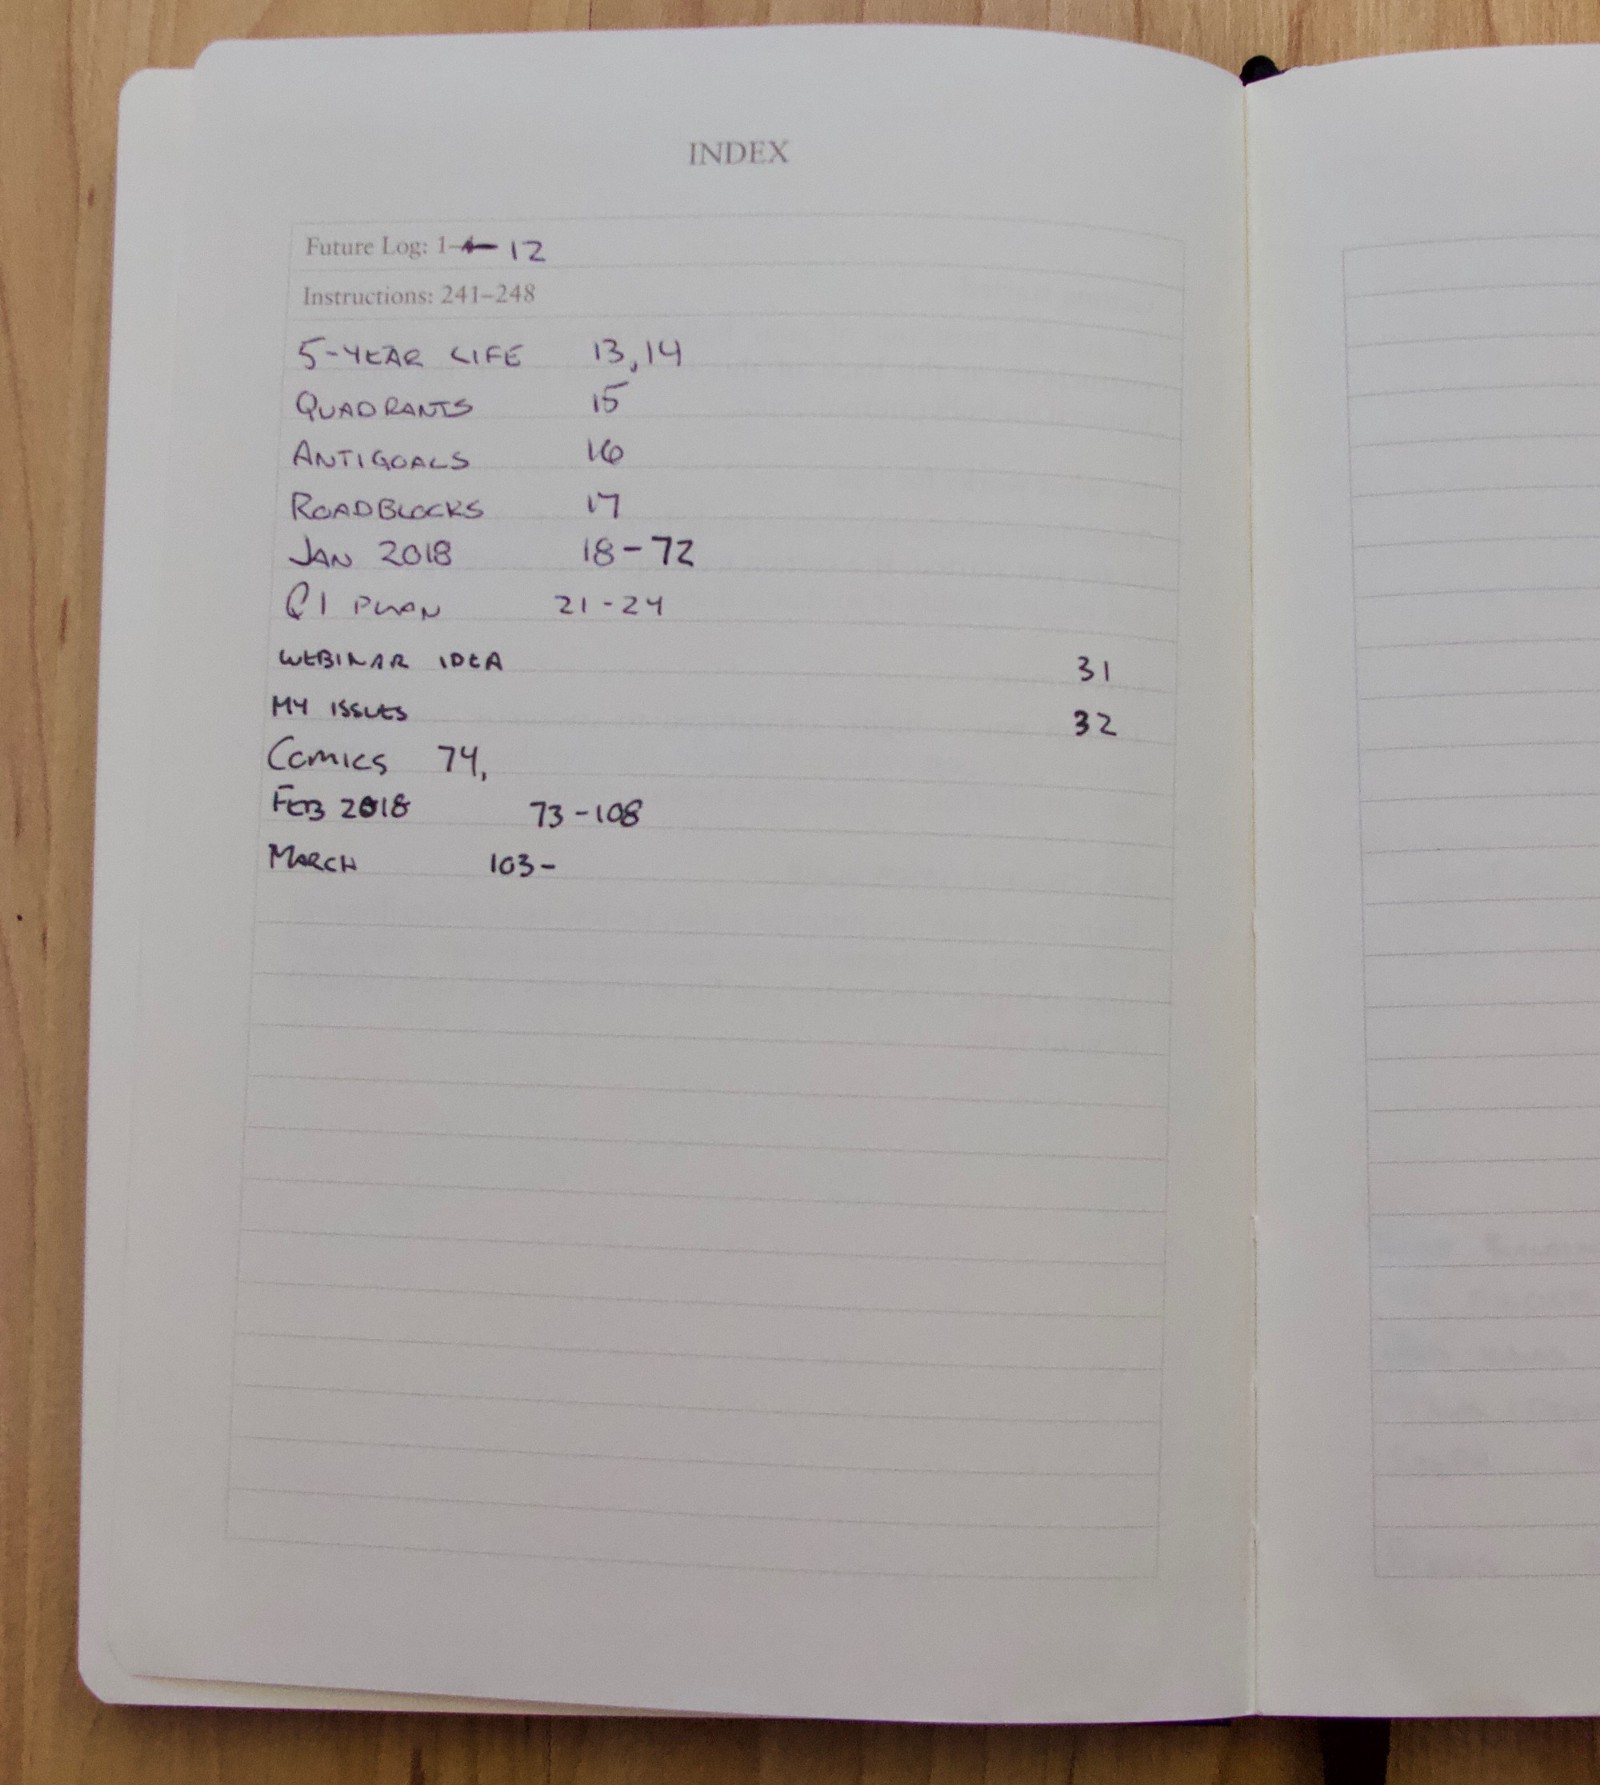 This is the index for your Bullet Journal